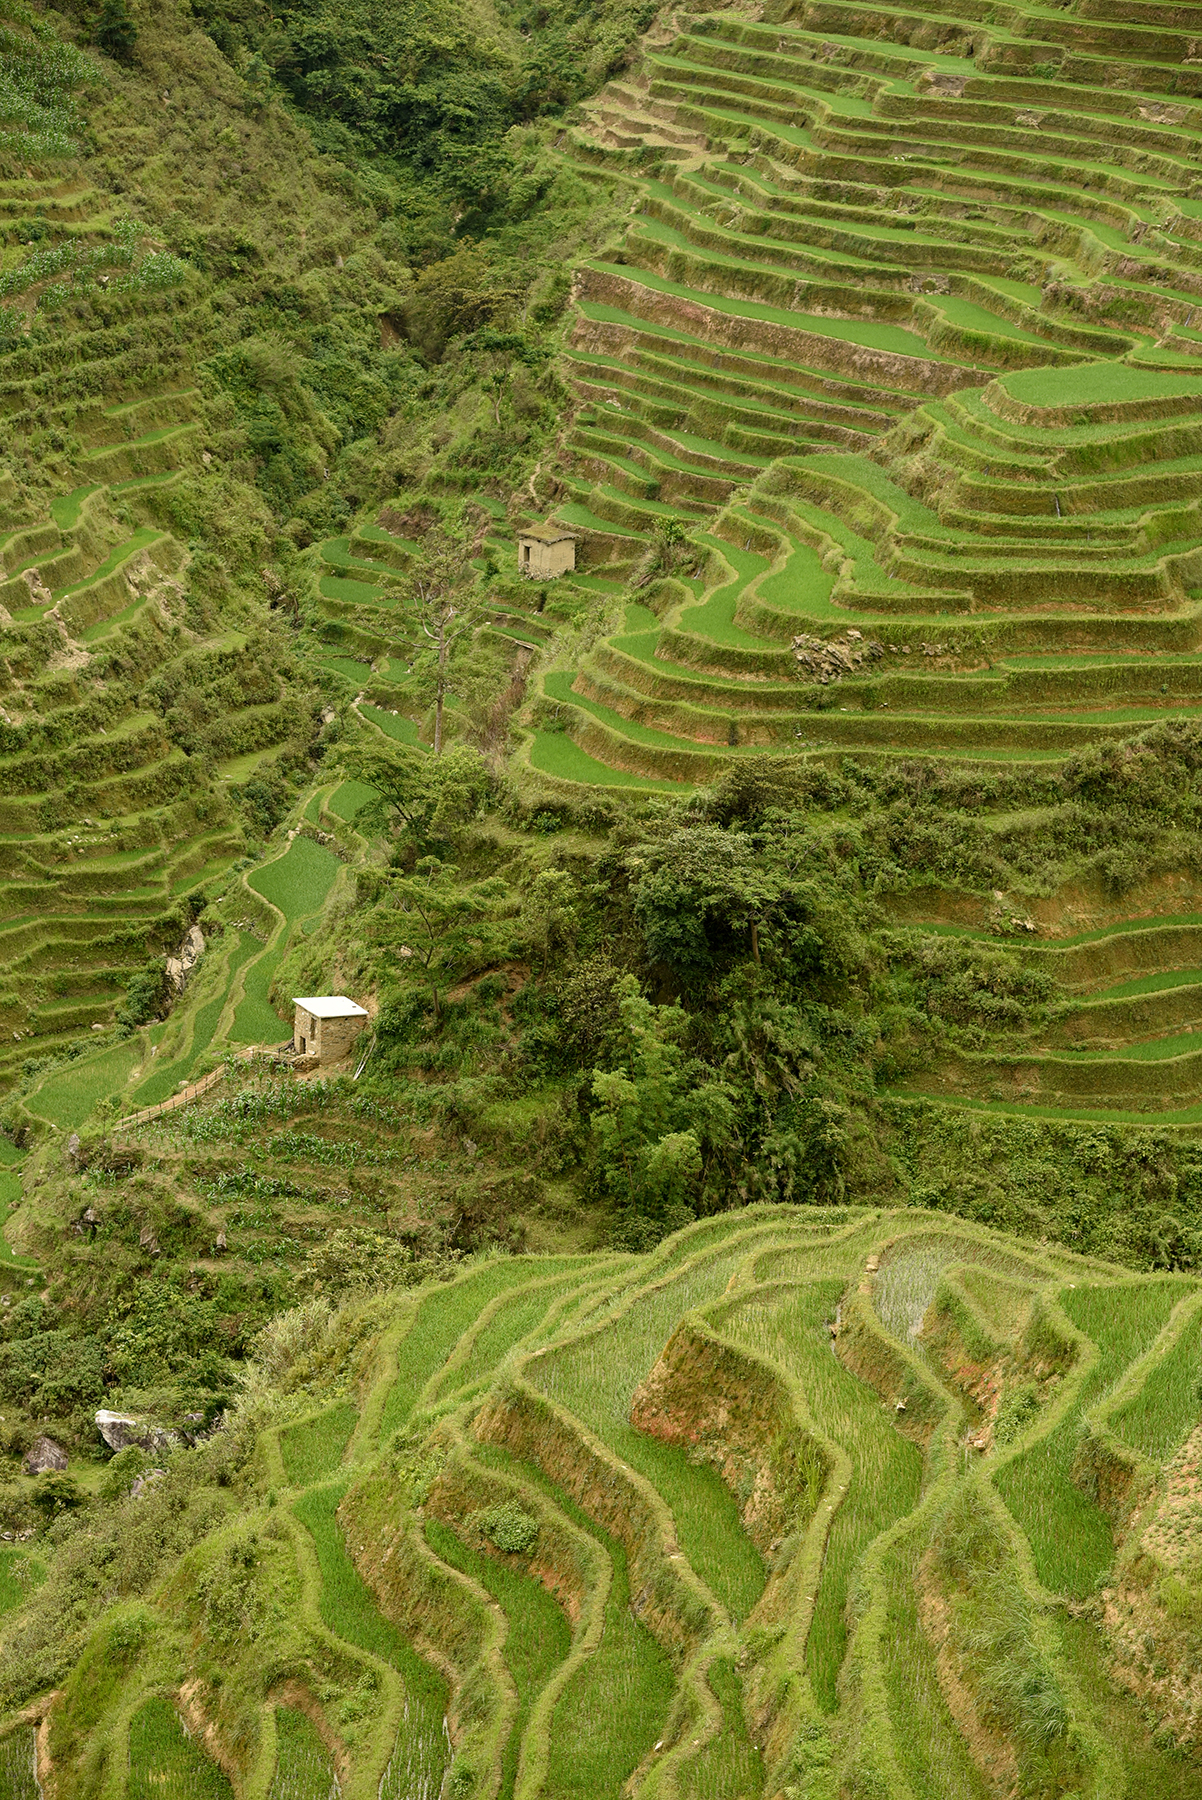 Terraced rice fields, a UNESCO World Heritage Site.